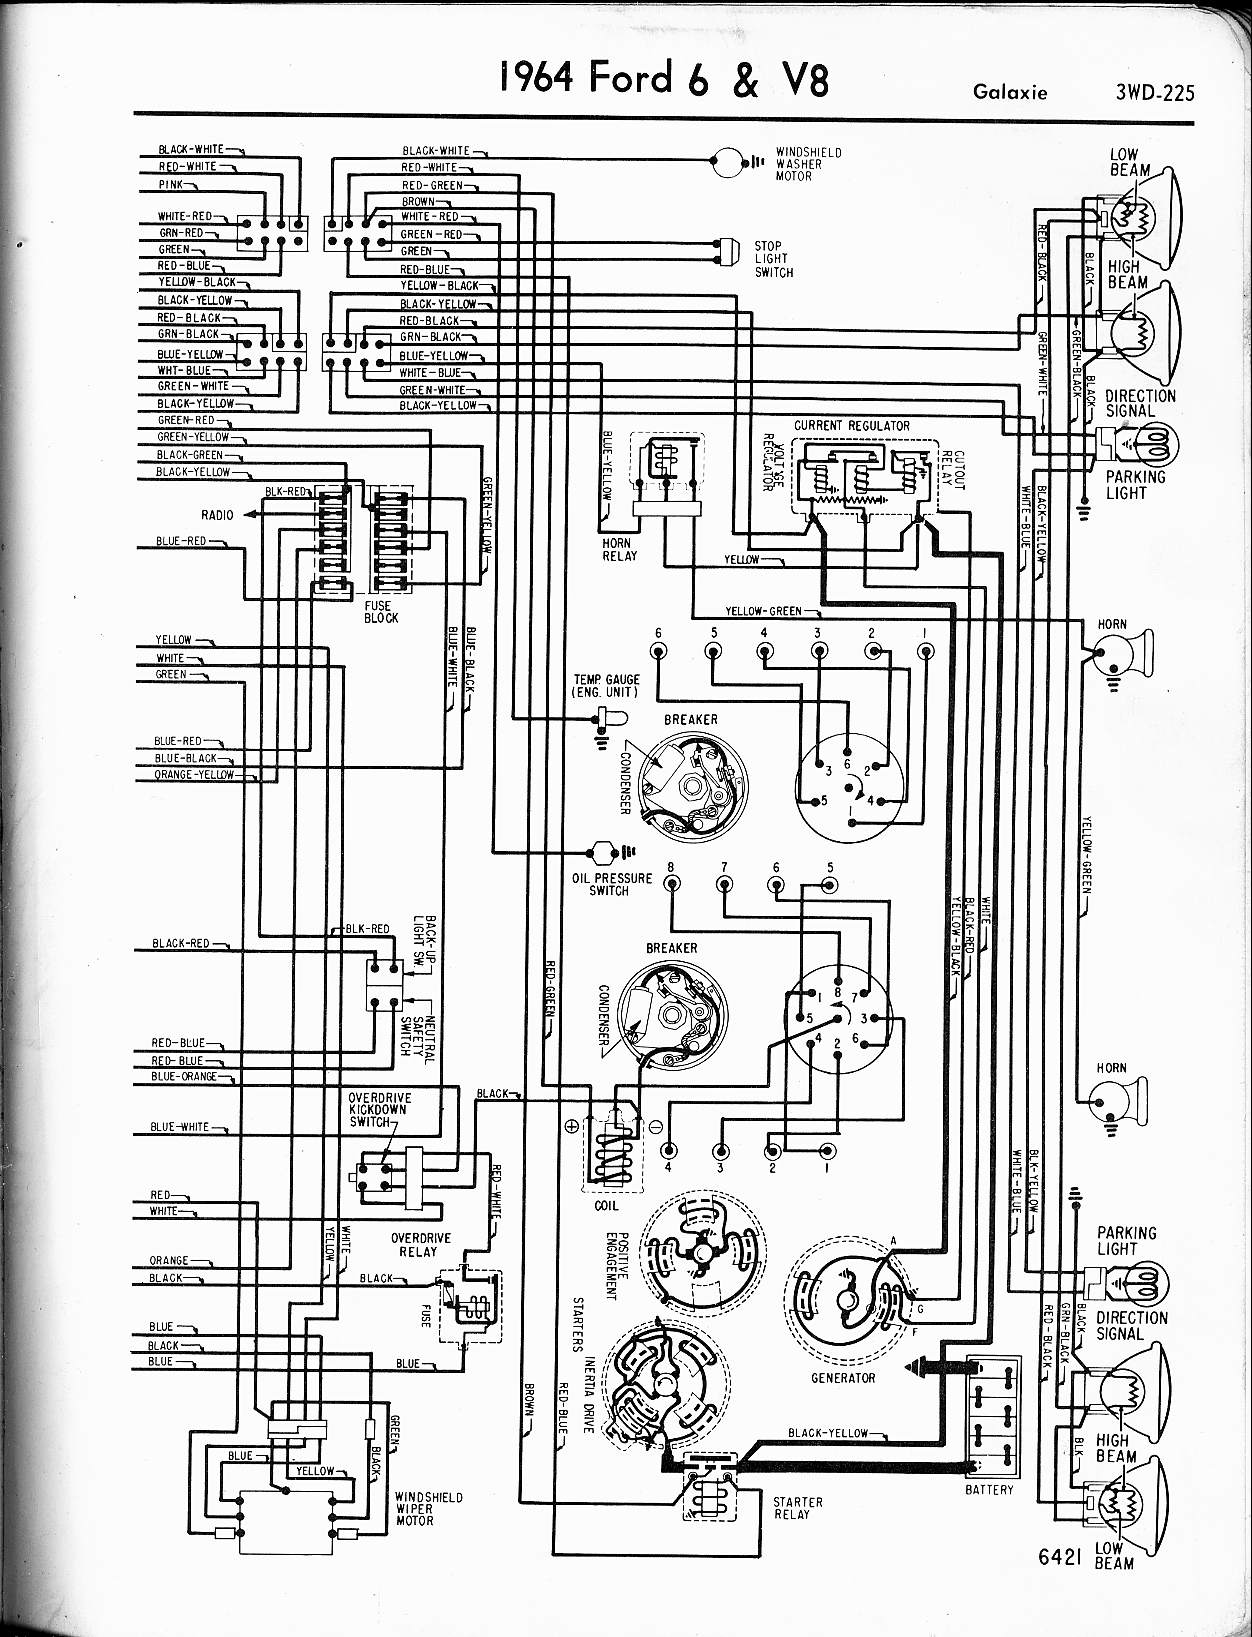 Ford 900 Wiring Diagram Library 63 Falcon Ignition Switch Saab